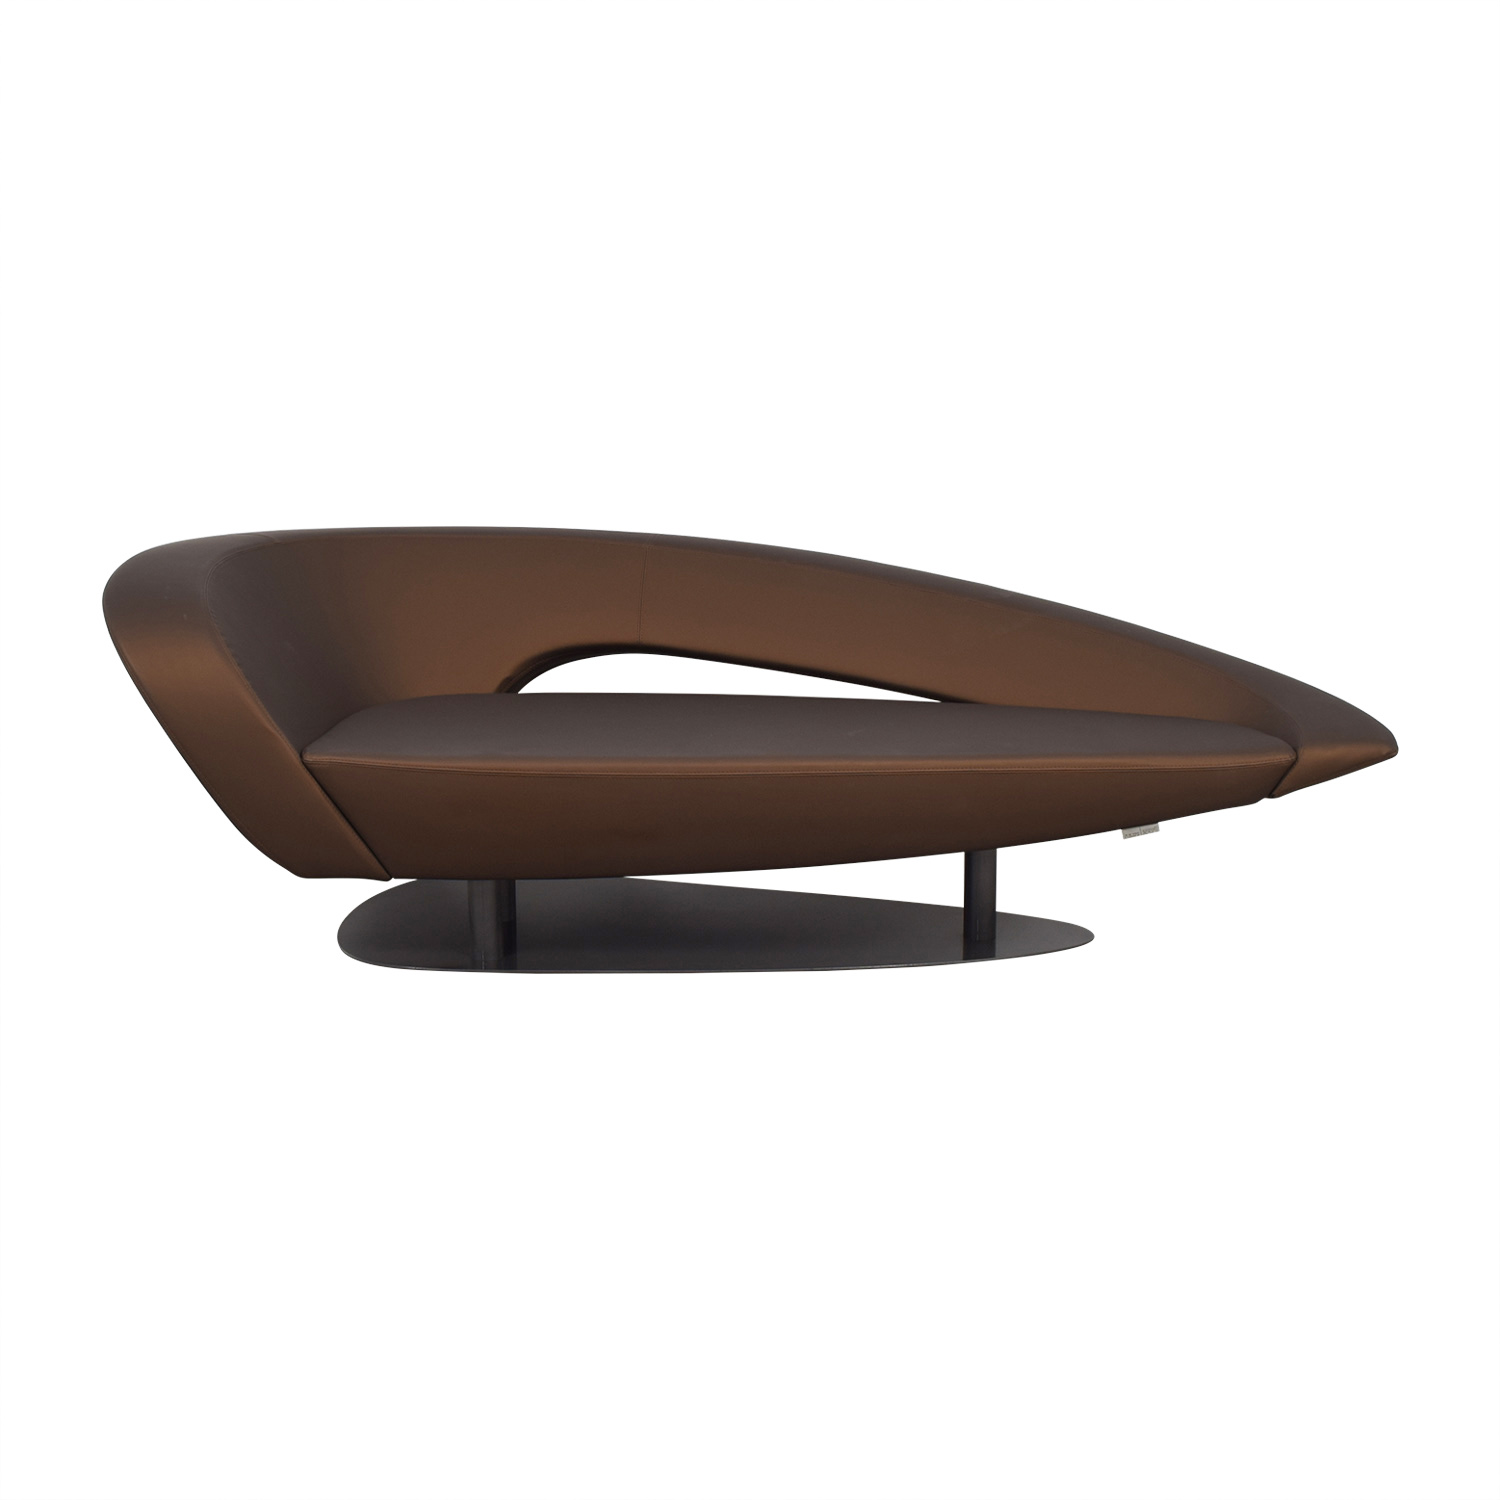 Roche Bobois Roche Bobois Brown Modern Loveseat used